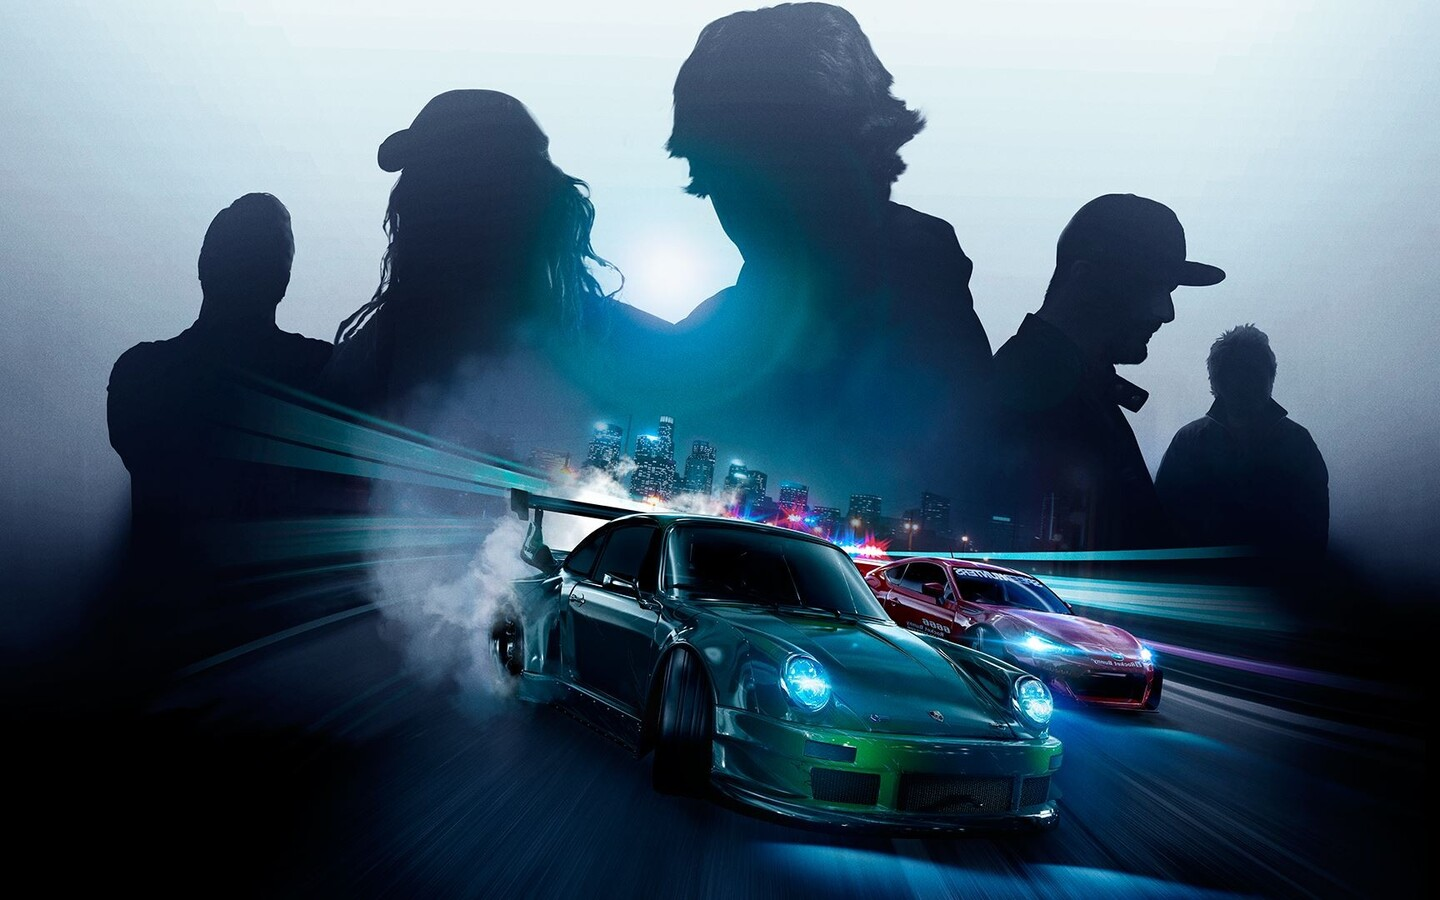 1440x900 Need For Speed 2015 Game 1440x900 Resolution Hd 4k